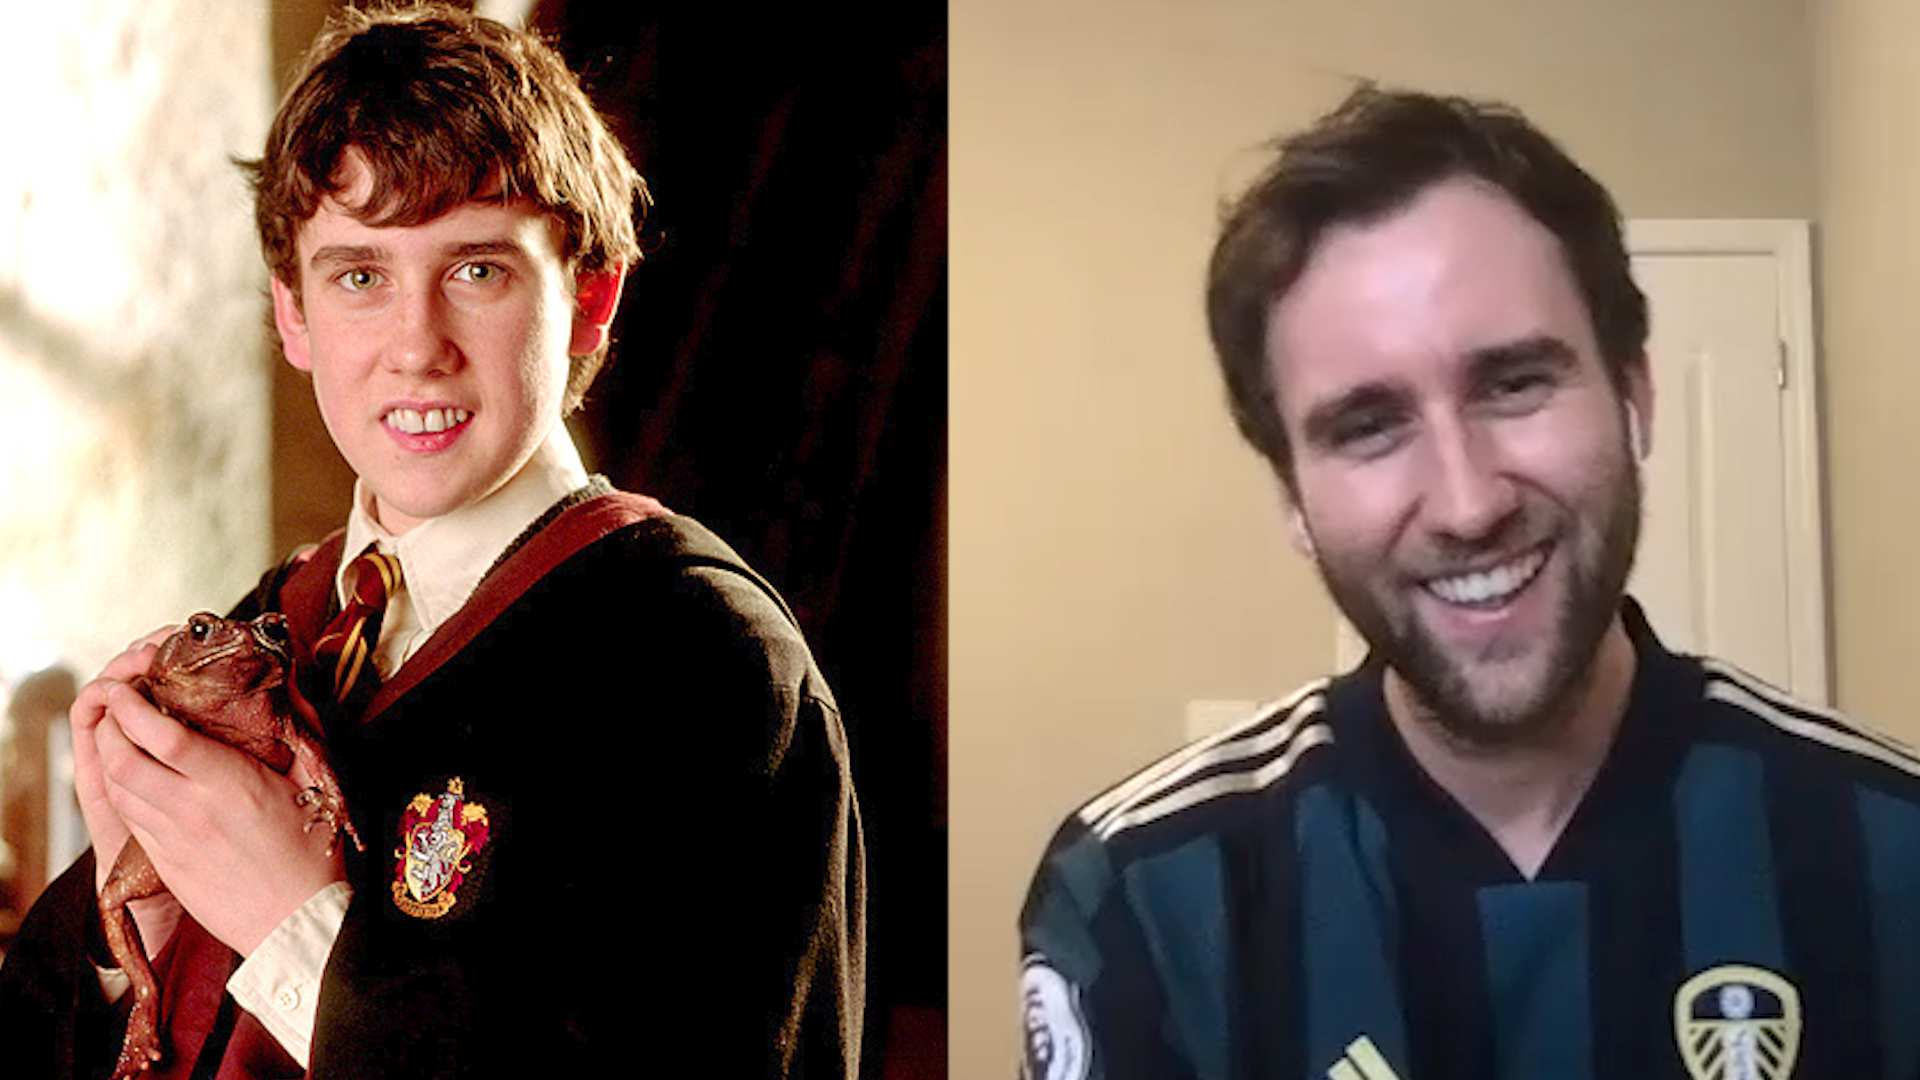 matthew-lewis-says-its-painful-to-watch-the-harry-potter-movies-heres-why